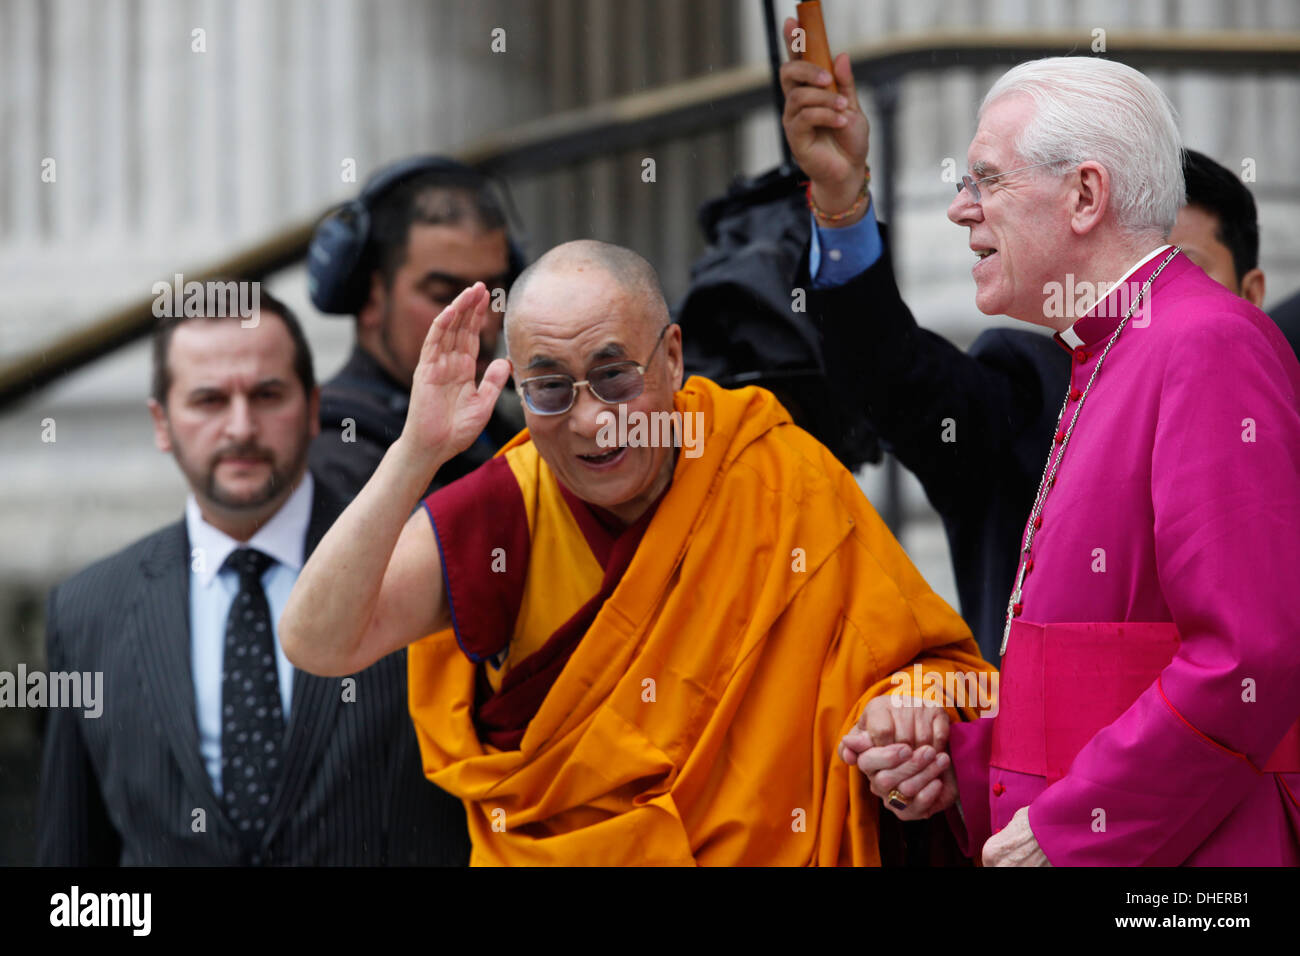 His Holiness the Dalai Lama arrives to St Paul's Cathedral to receive the 2012 Templeton Prize in London Britain, on 14 May 2012 - Stock Image